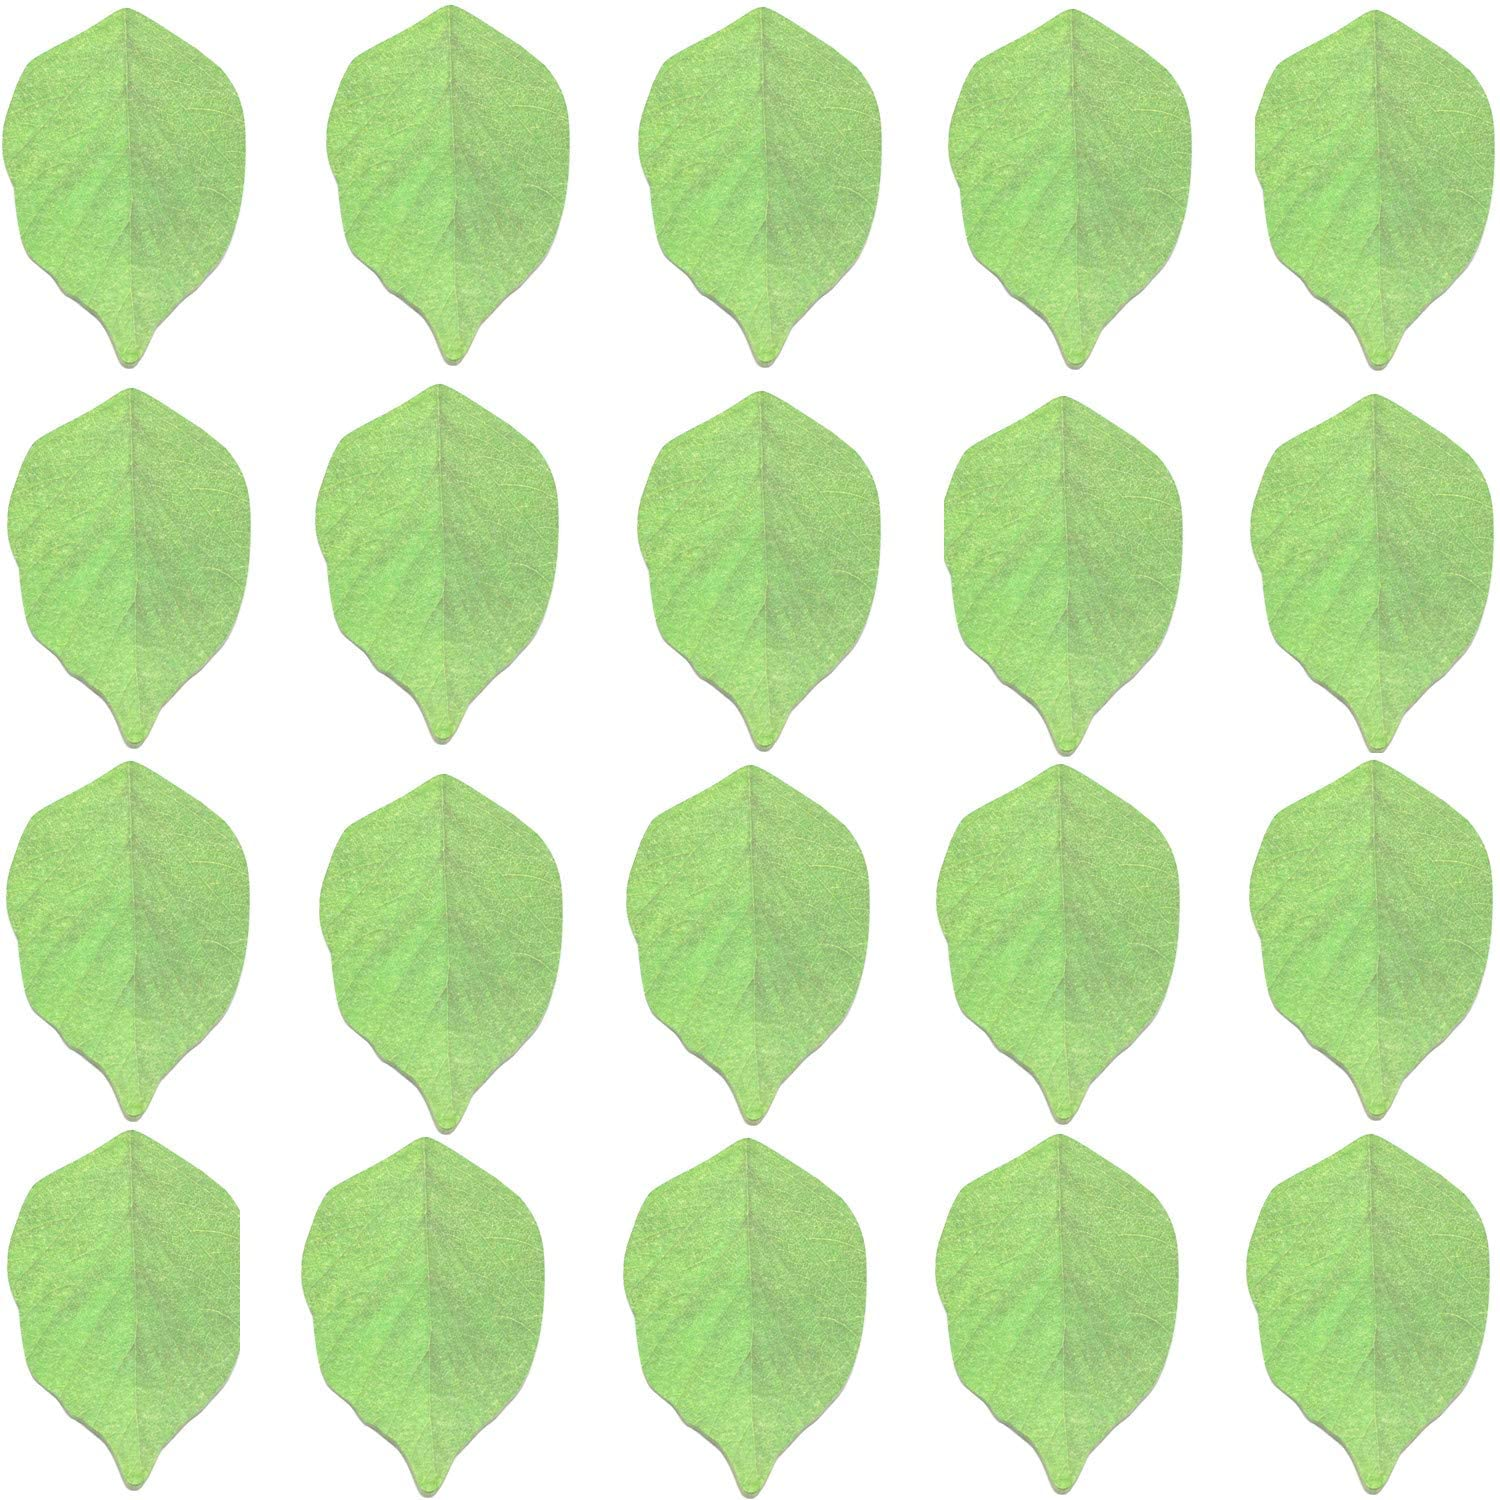 MIAO JIN 20 Pack Cute Leaf Shape Recyclable Sticky Notes Pads Memo Notes (Green, 1000 Sheets in Total)